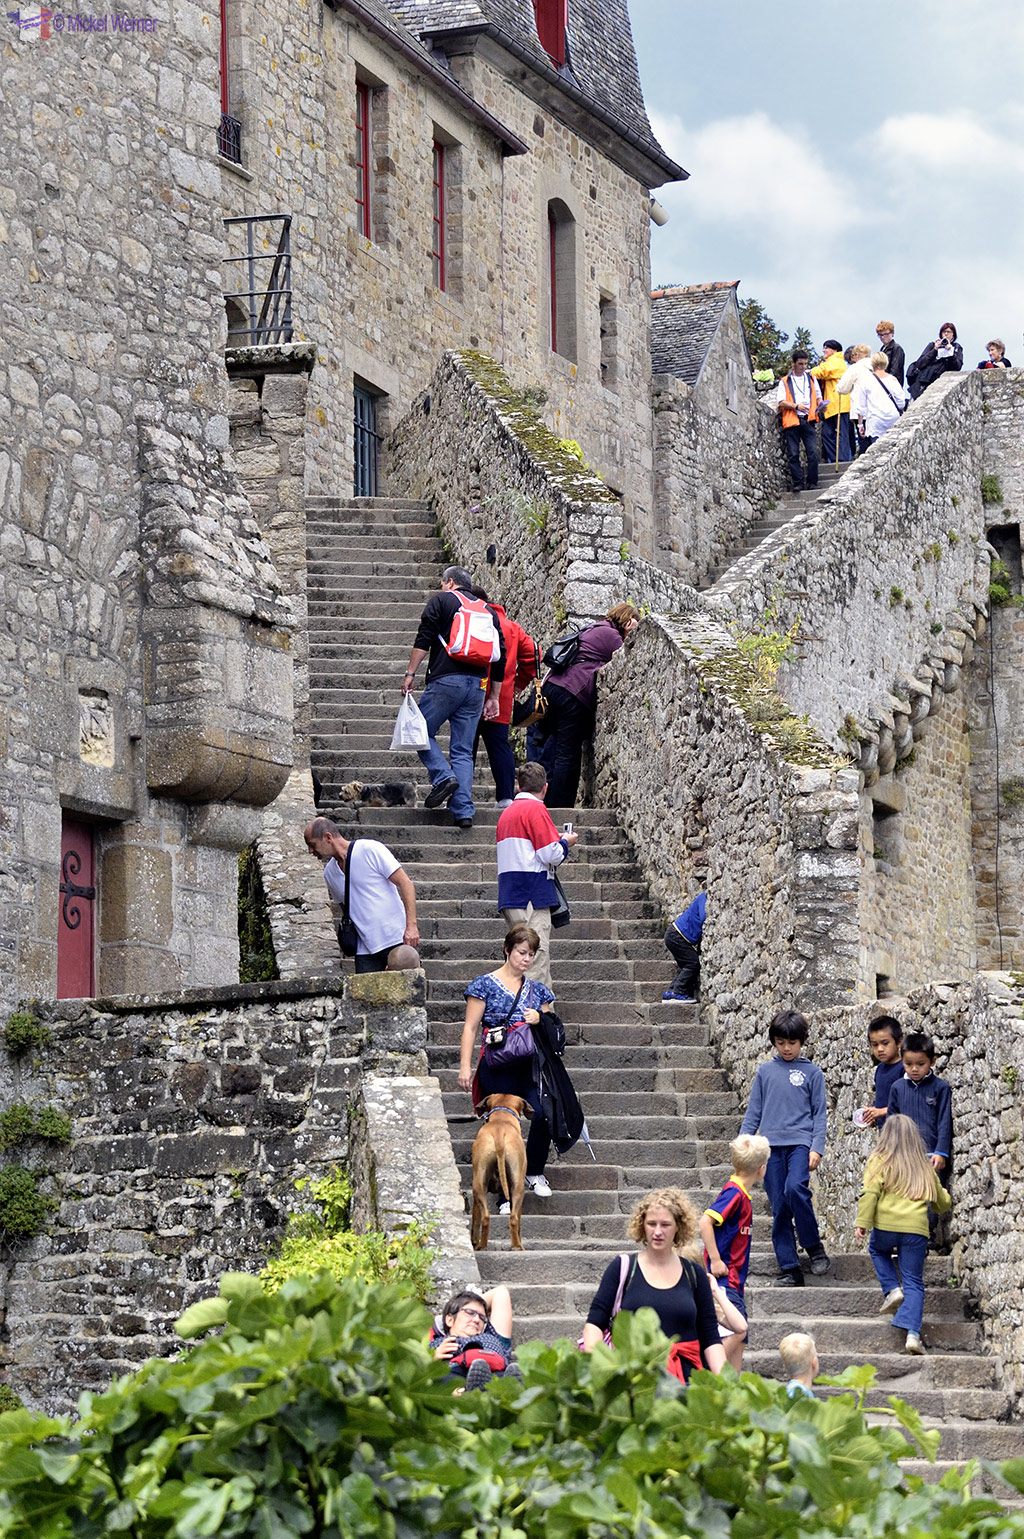 Steep stairs of Mont St. Michel